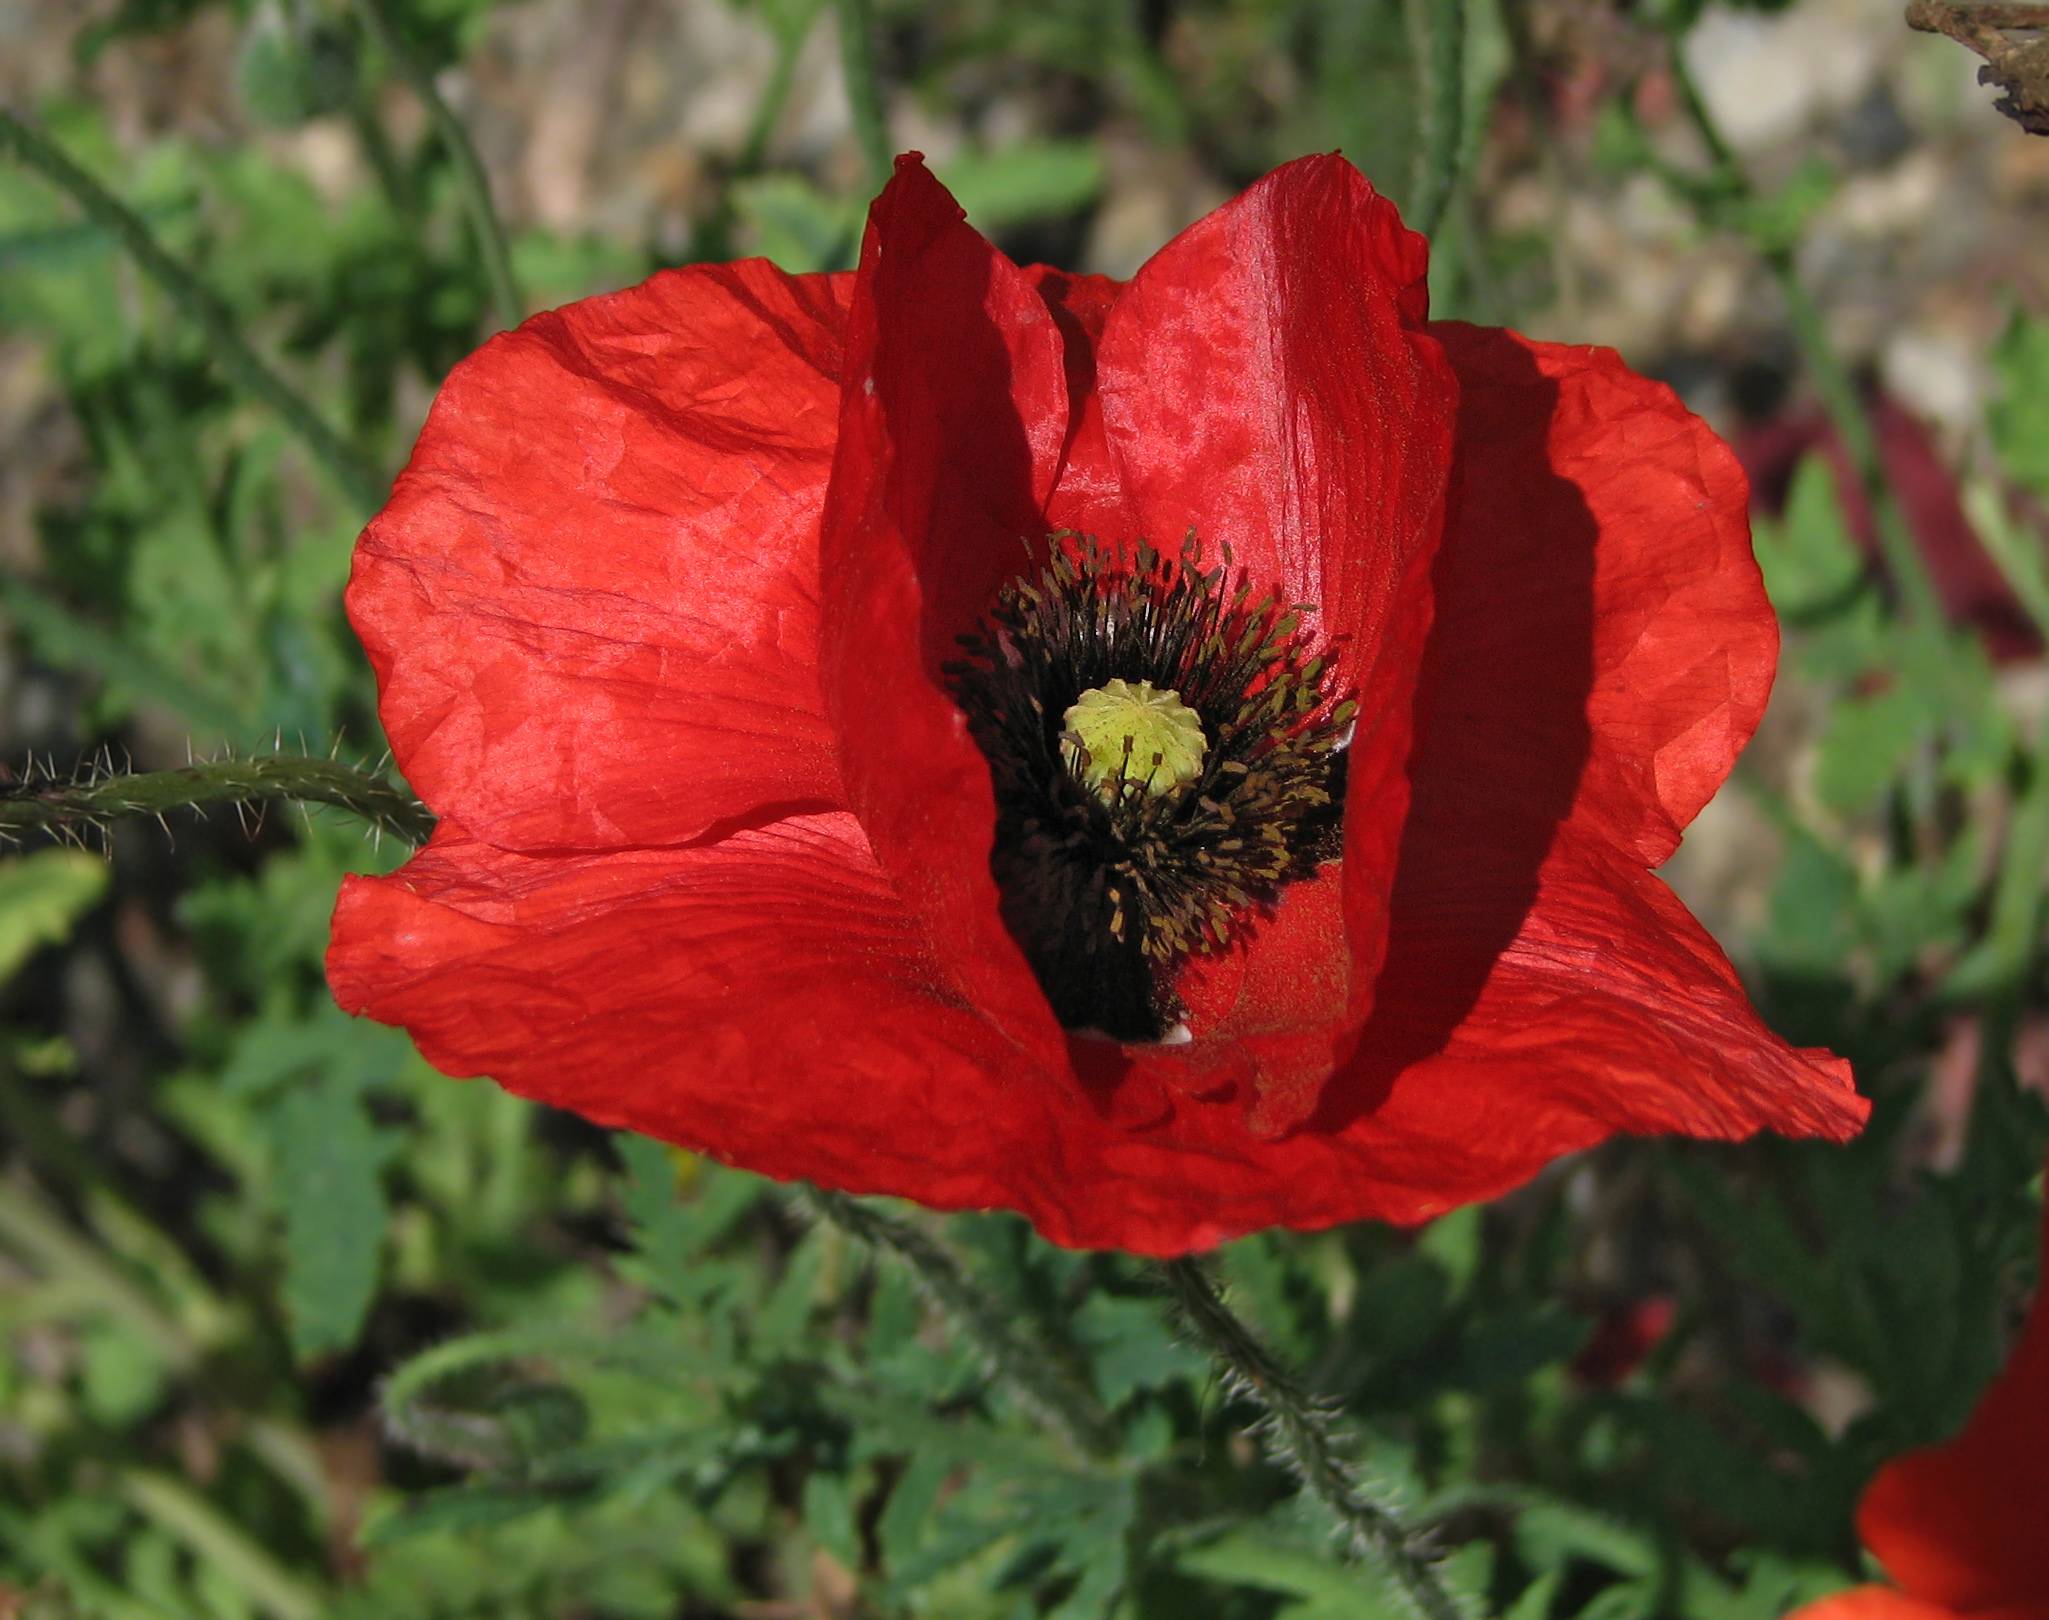 Filered Poppy Papaver Flower Closeup 2049pxg Wikimedia Commons